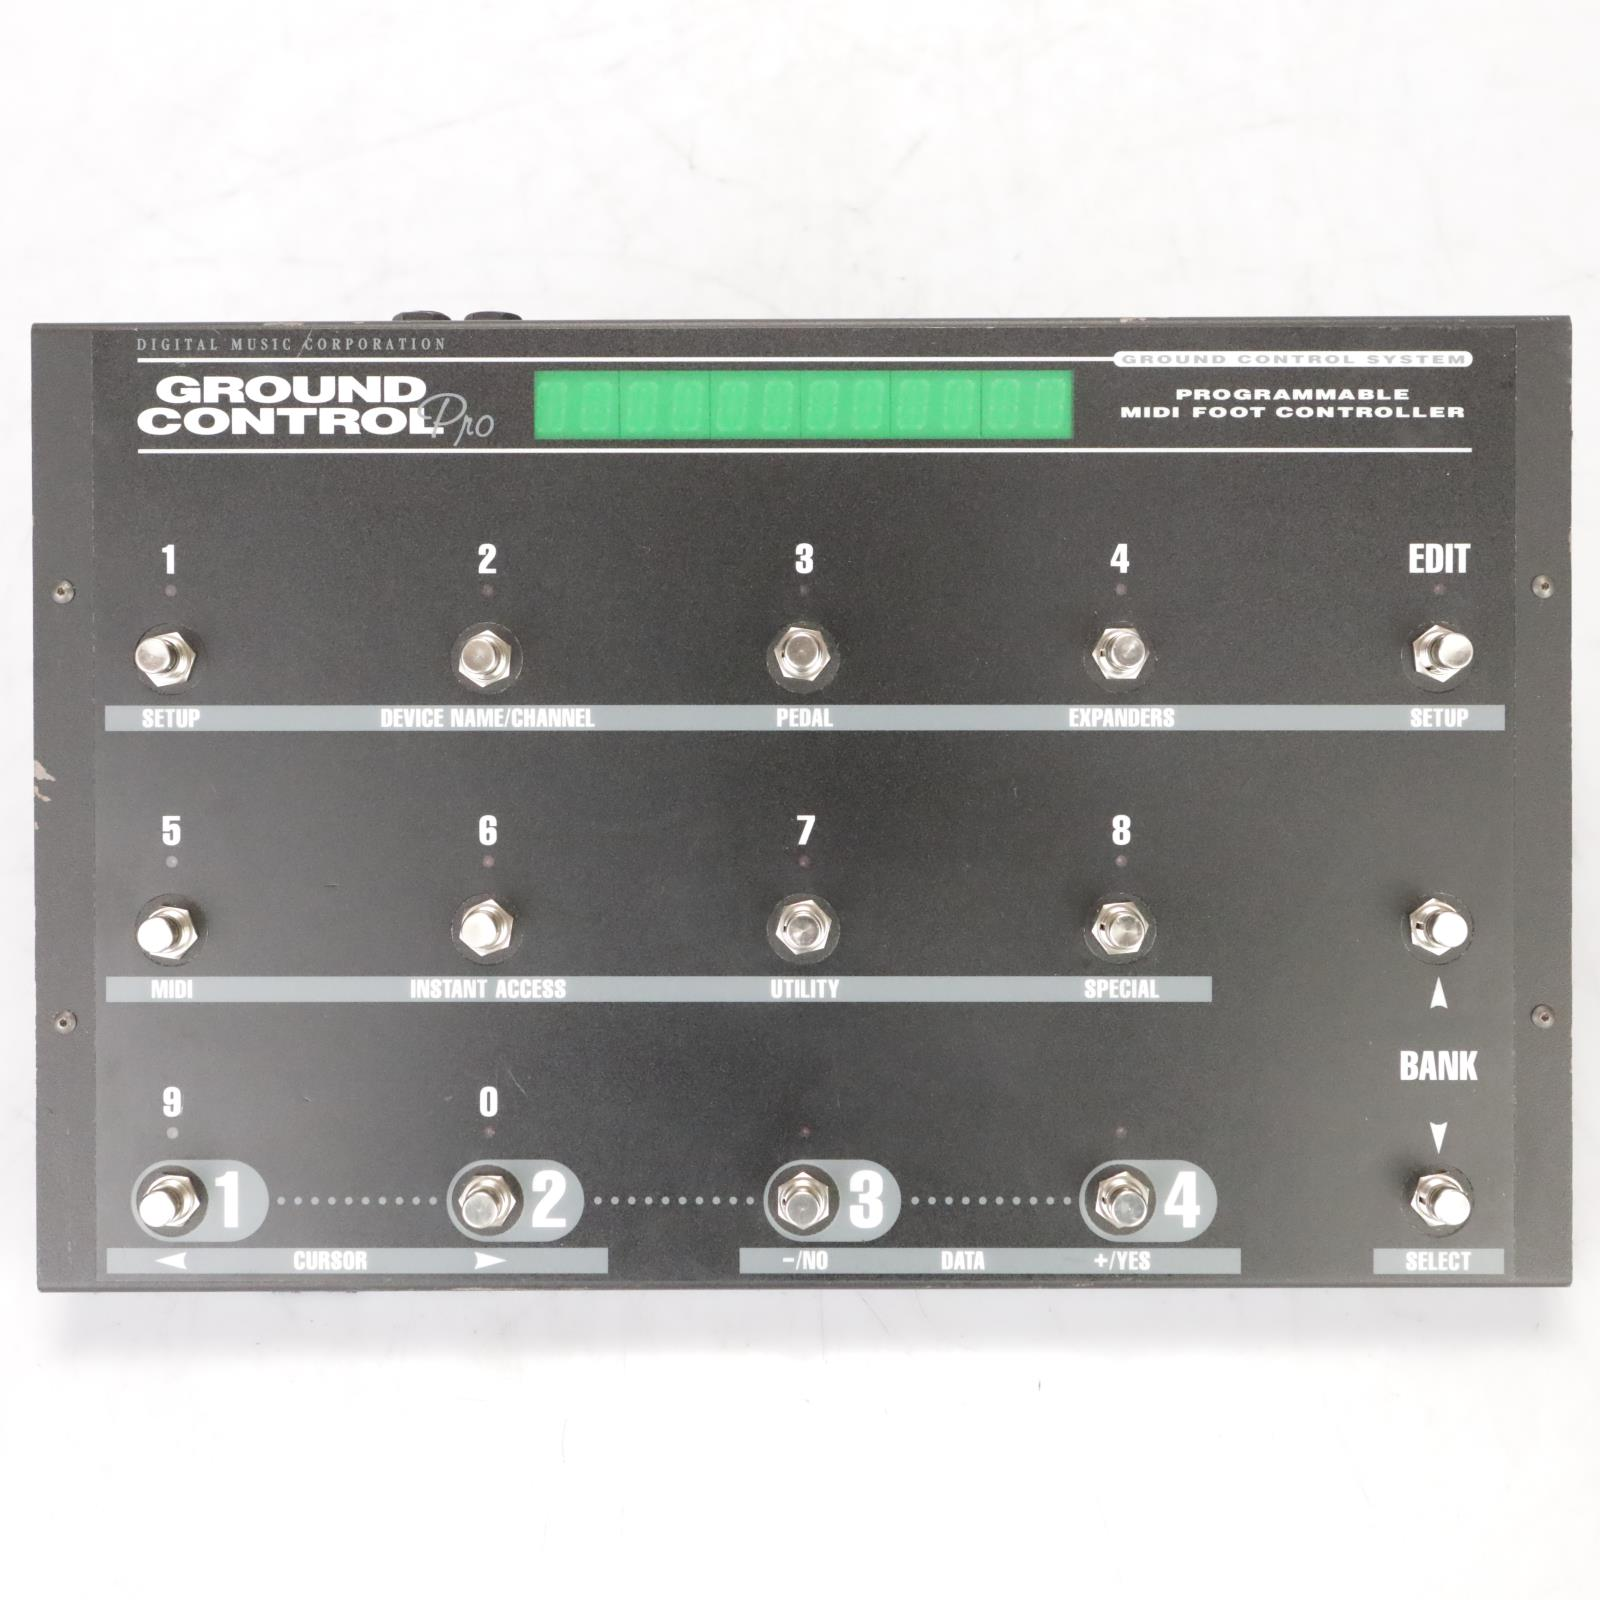 Digital Music Corporation Voodoo Lab Ground Control Pro Owned by Garbage #38679